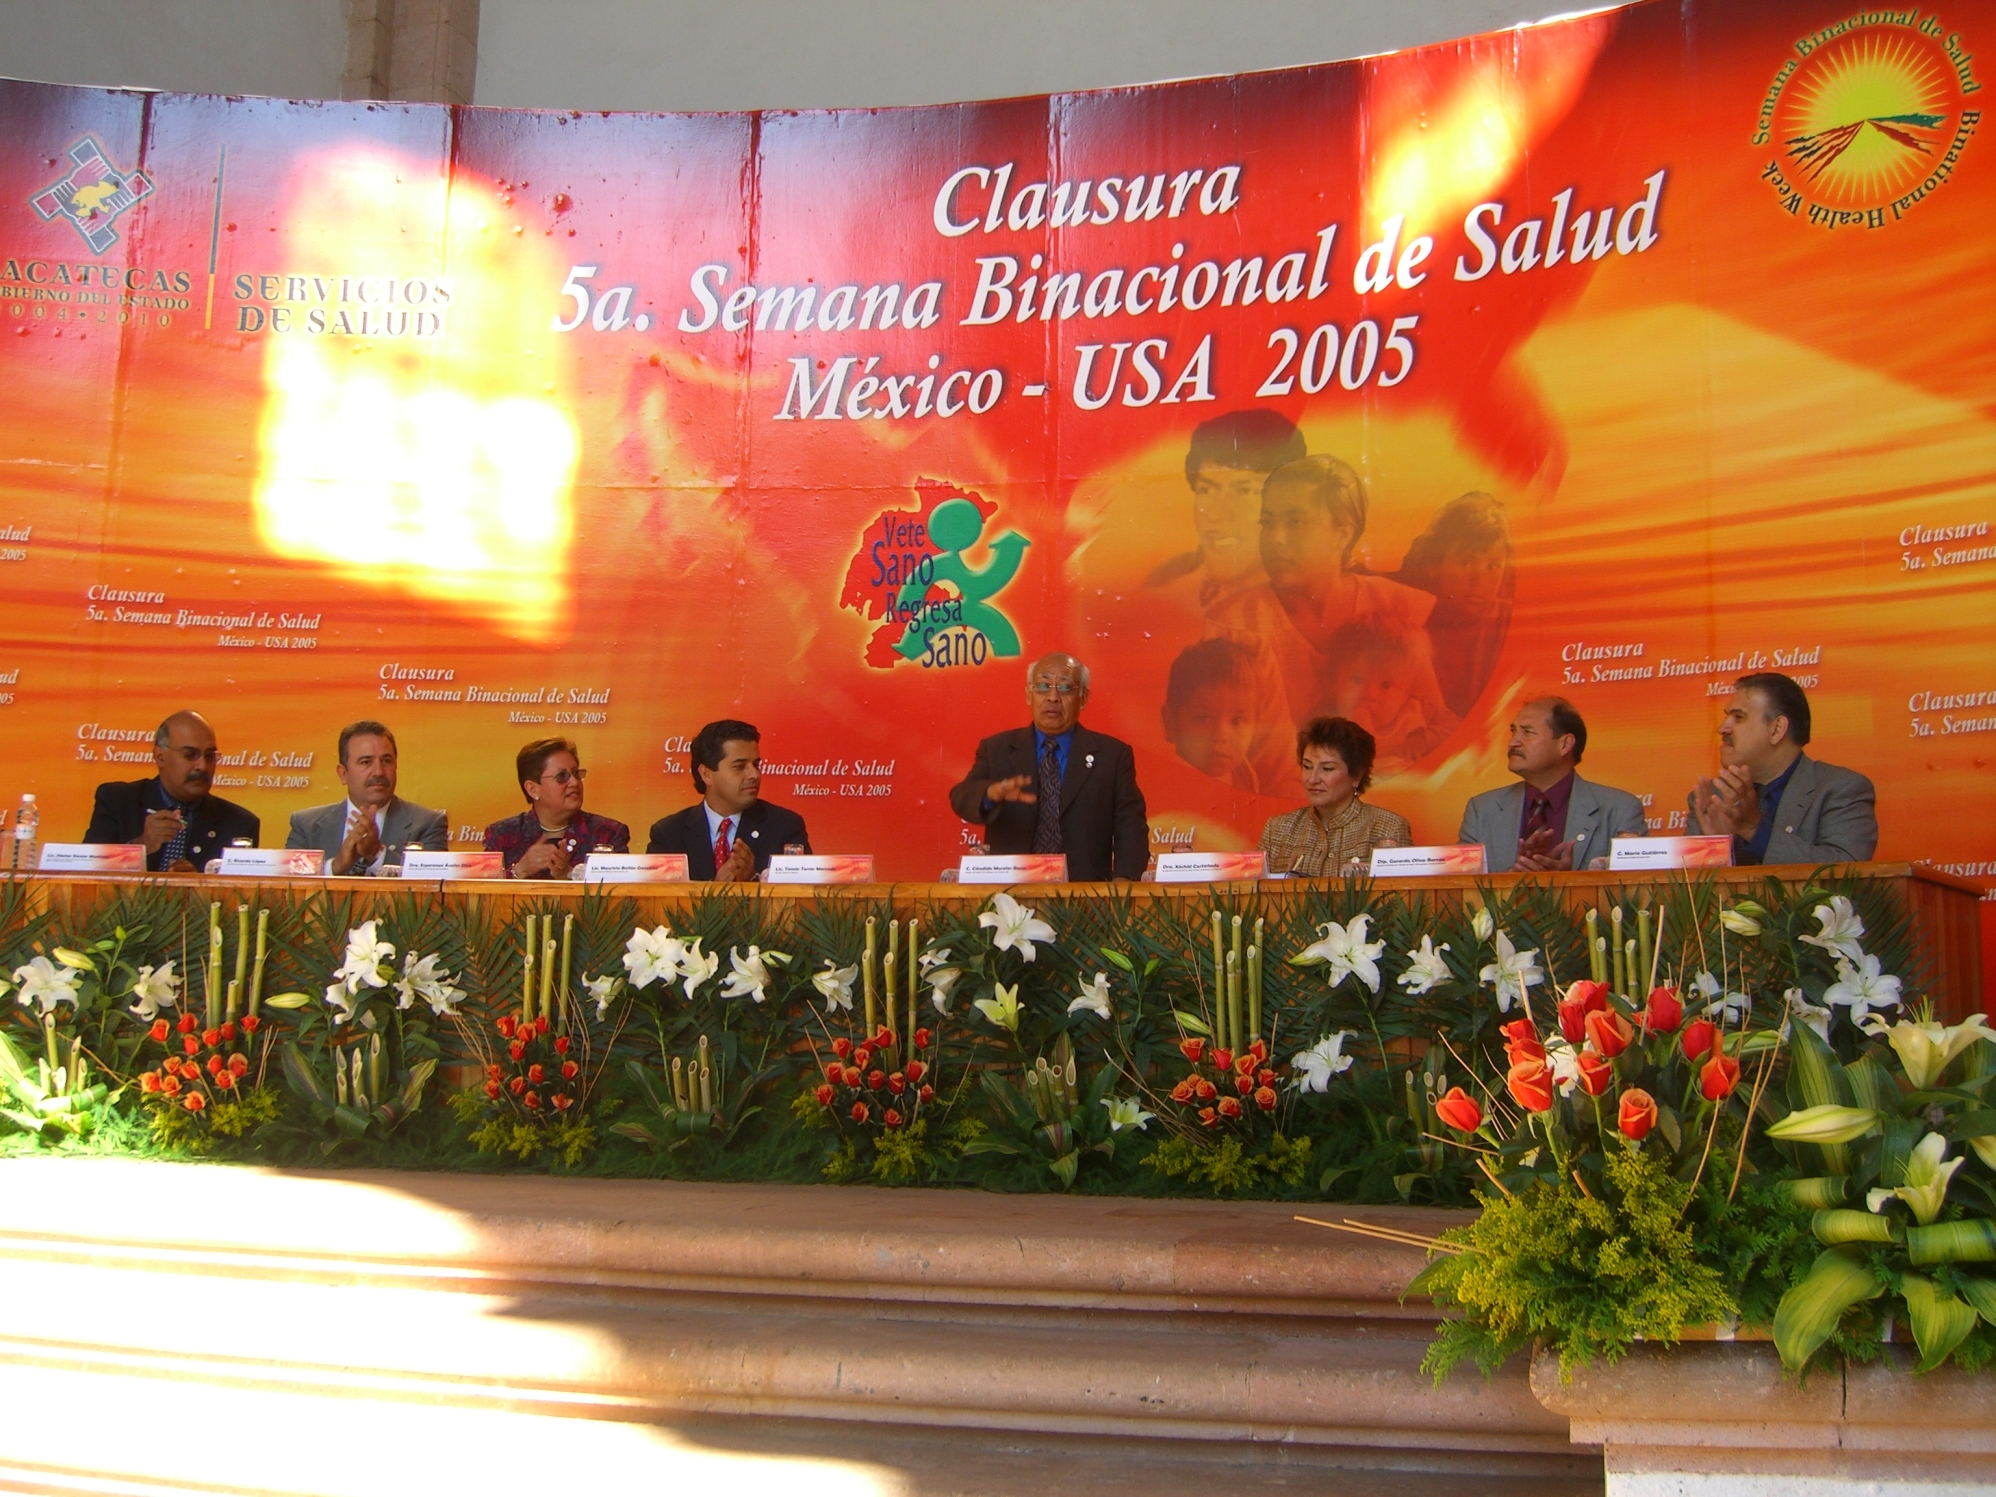 presidium Clausura SBS 2005 006